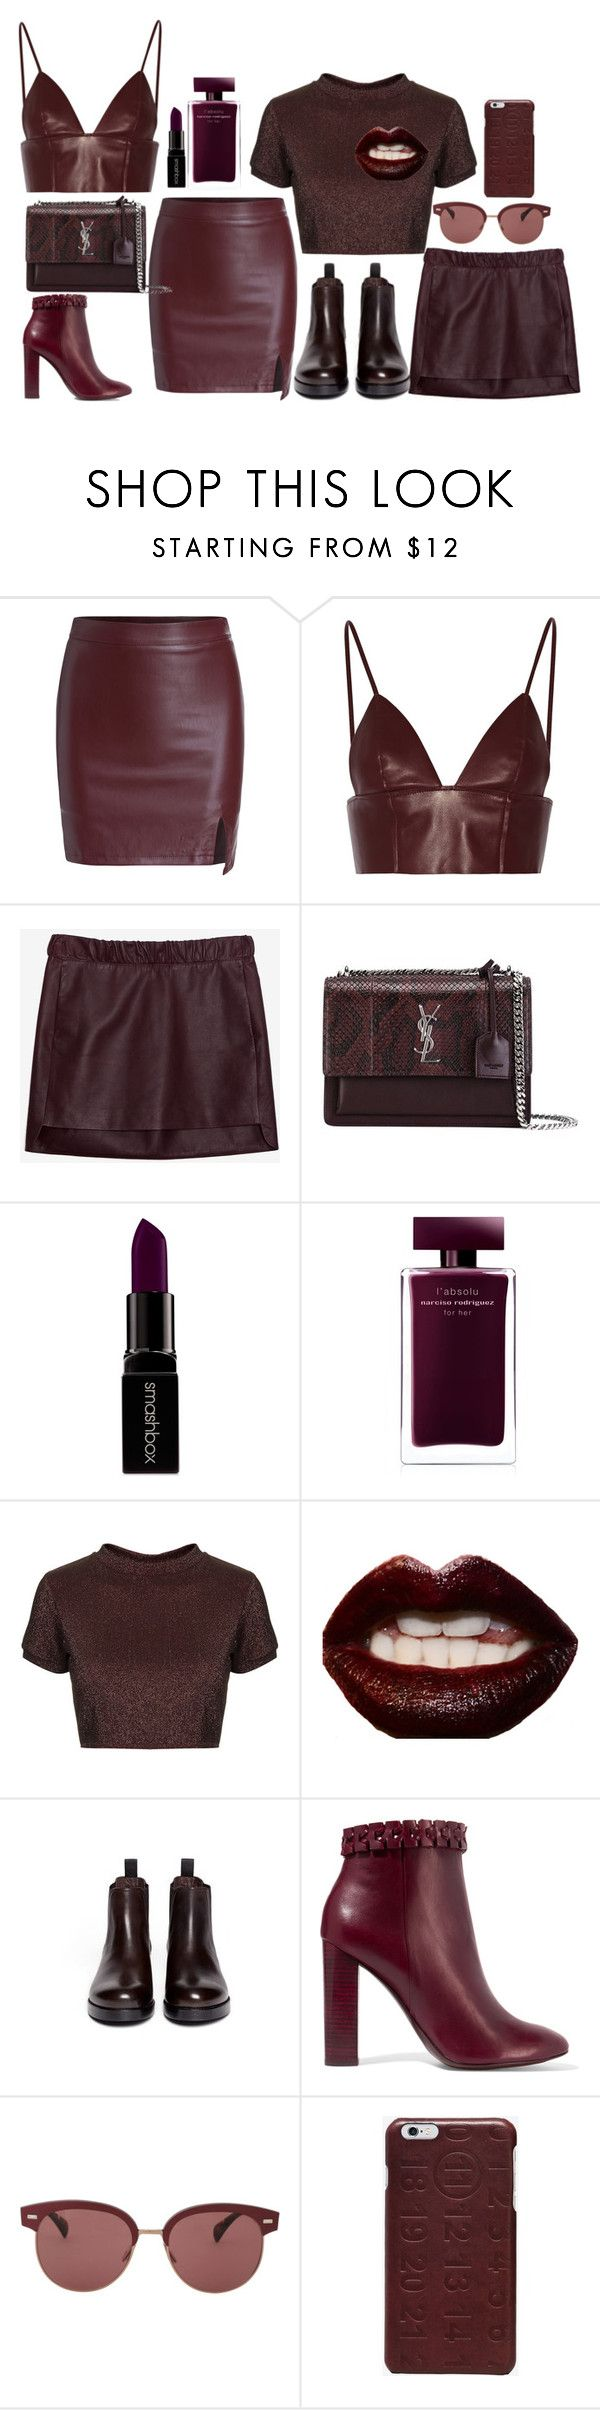 """""""Burgundy Babe"""" by dissolving-film ❤ liked on Polyvore featuring T By Alexander Wang, Neil Barrett, Yves Saint Laurent, Smashbox, Narciso Rodriguez, Topshop, Manic Panic NYC, Sam Edelman, Tory Burch and Oliver Peoples"""